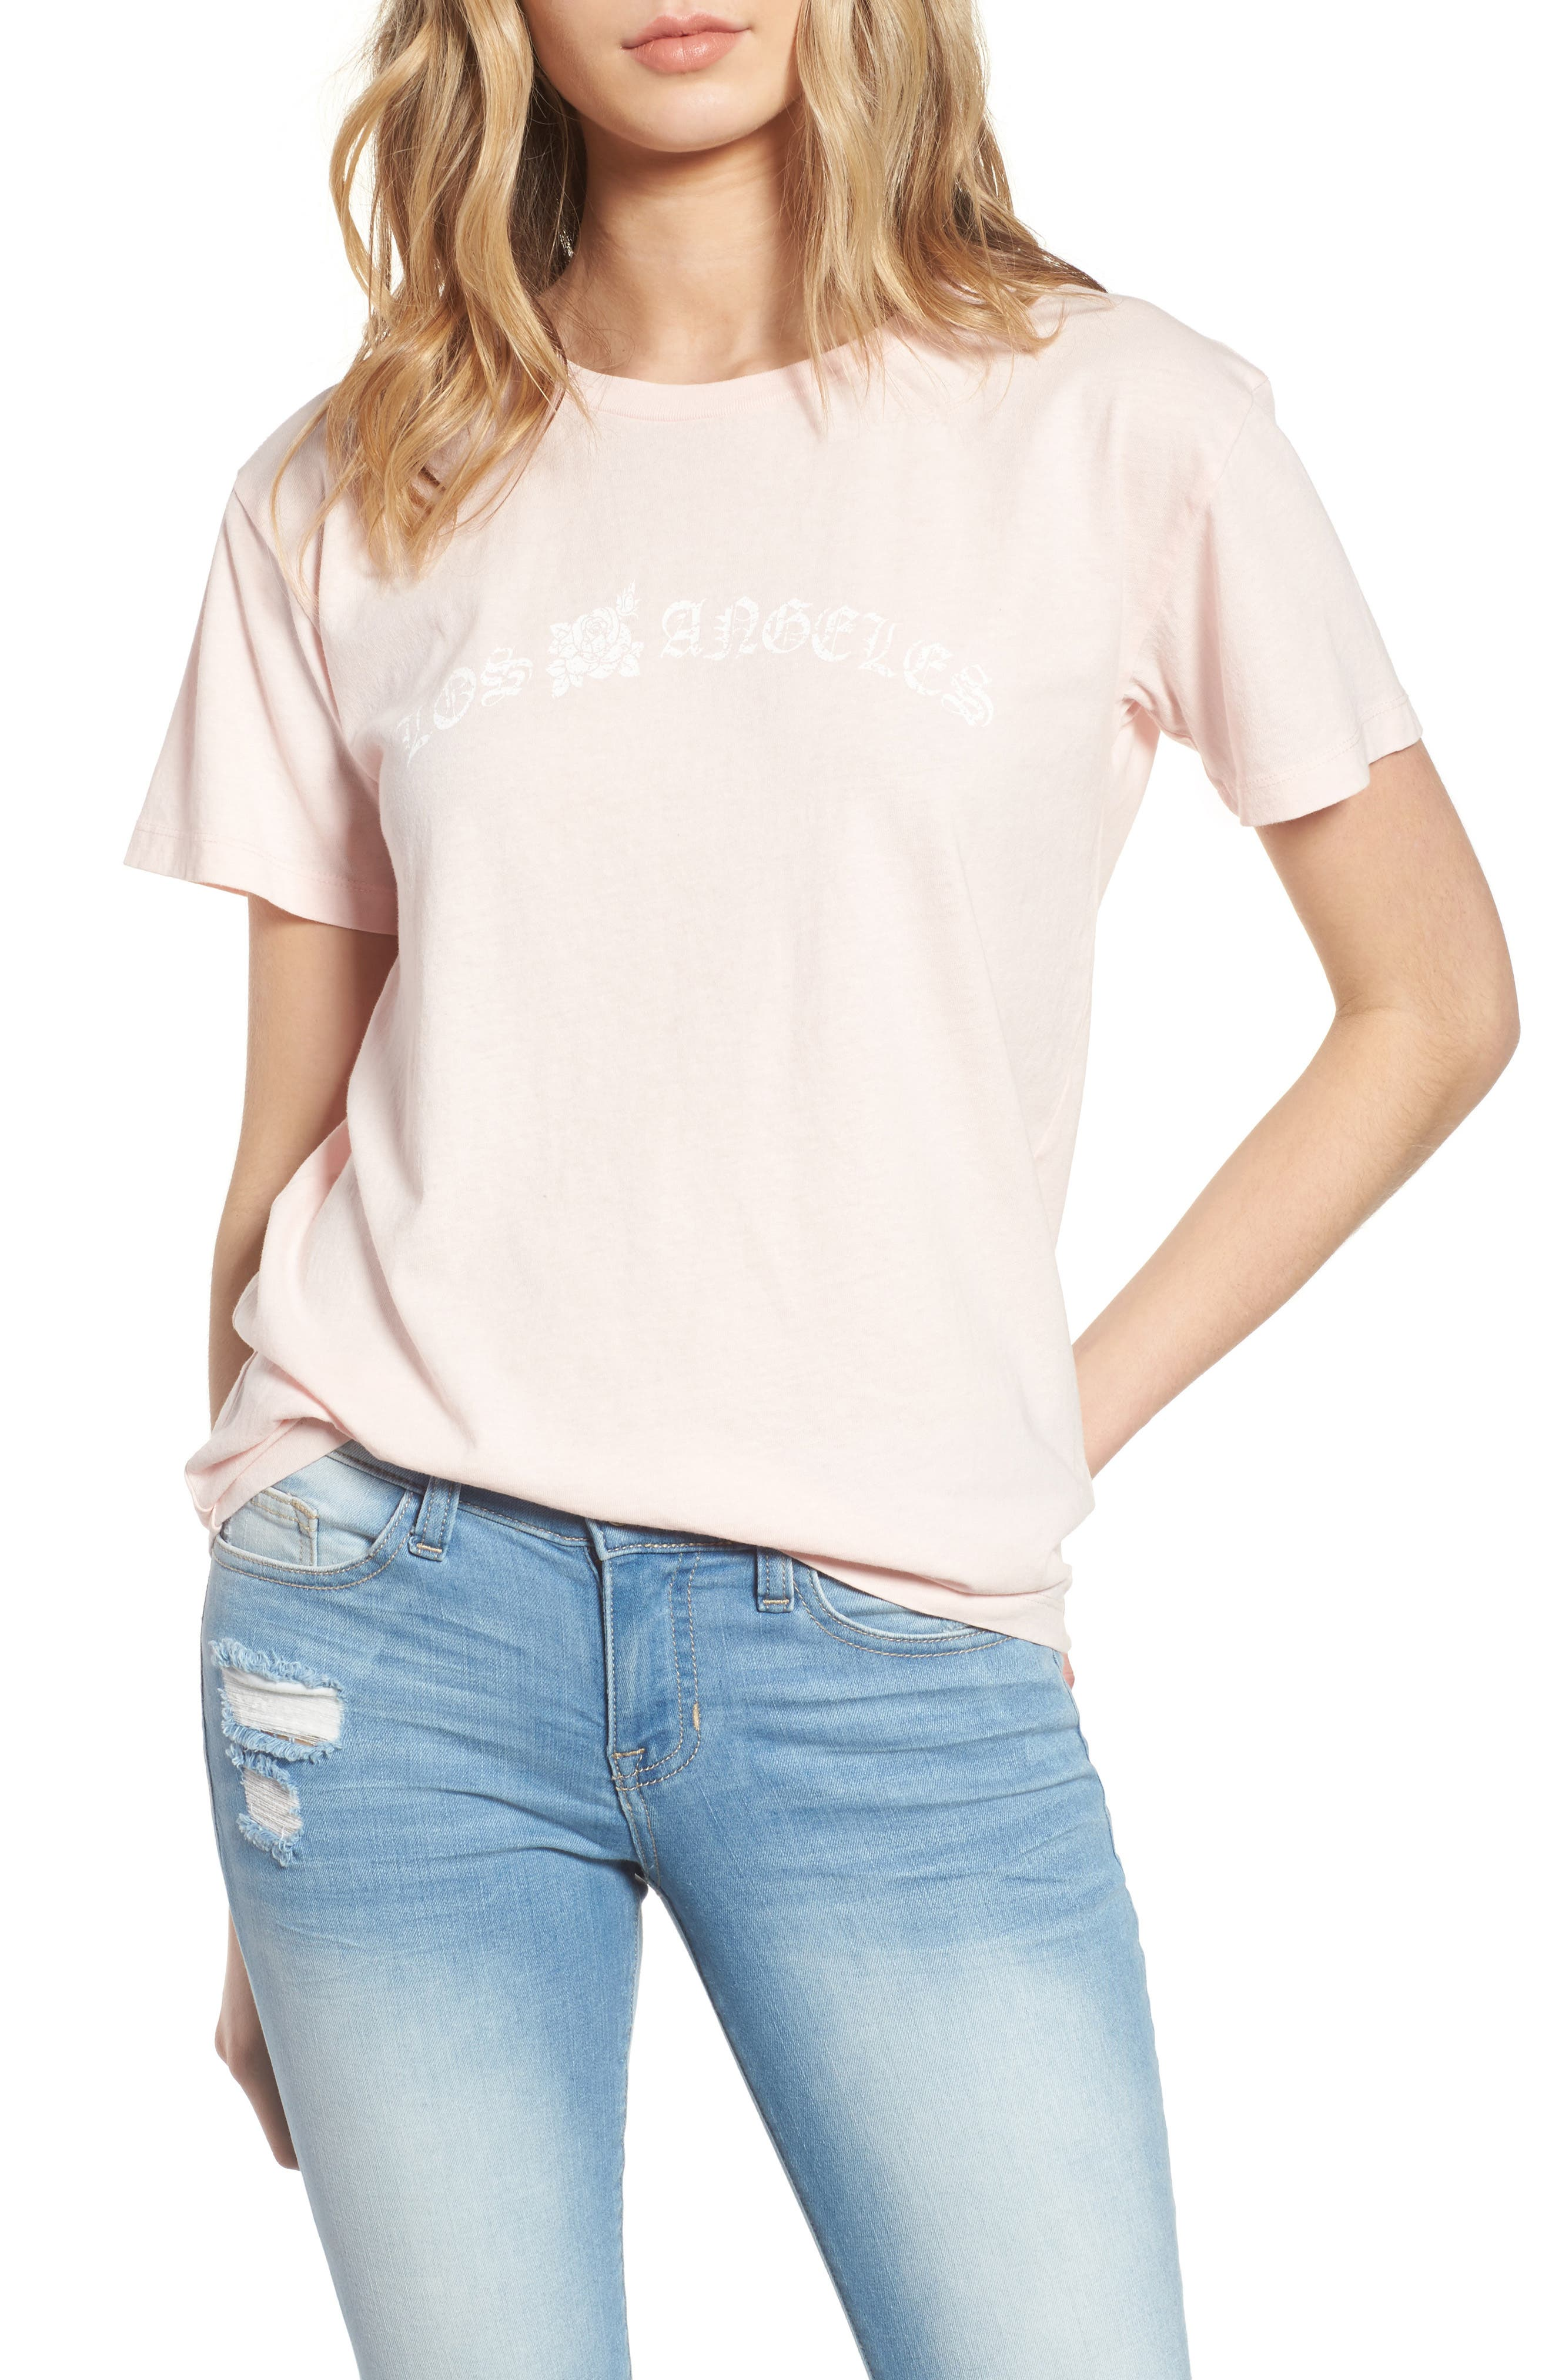 Los Angeles Cotton Boyfriend Tee,                             Main thumbnail 1, color,                             Washed Pale Pink